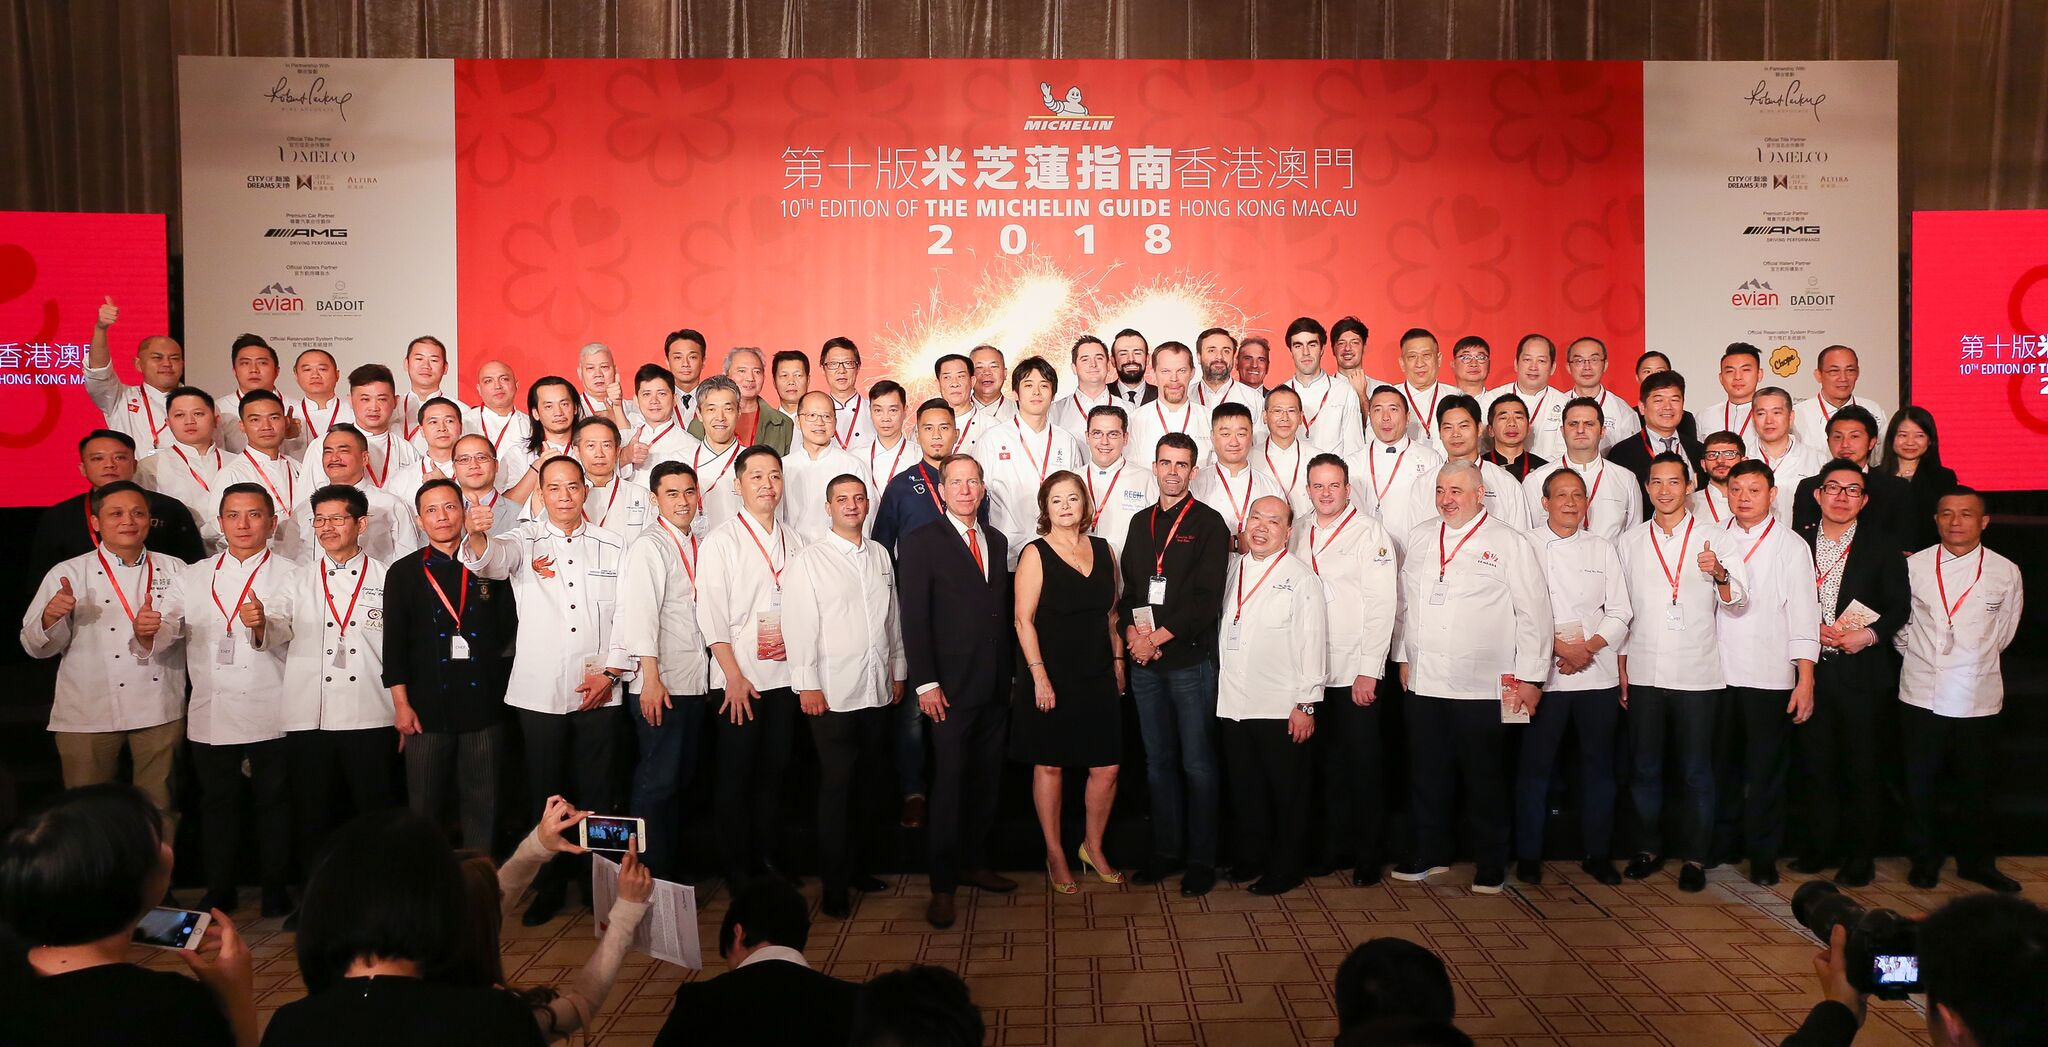 large group of chefs in white uniforms